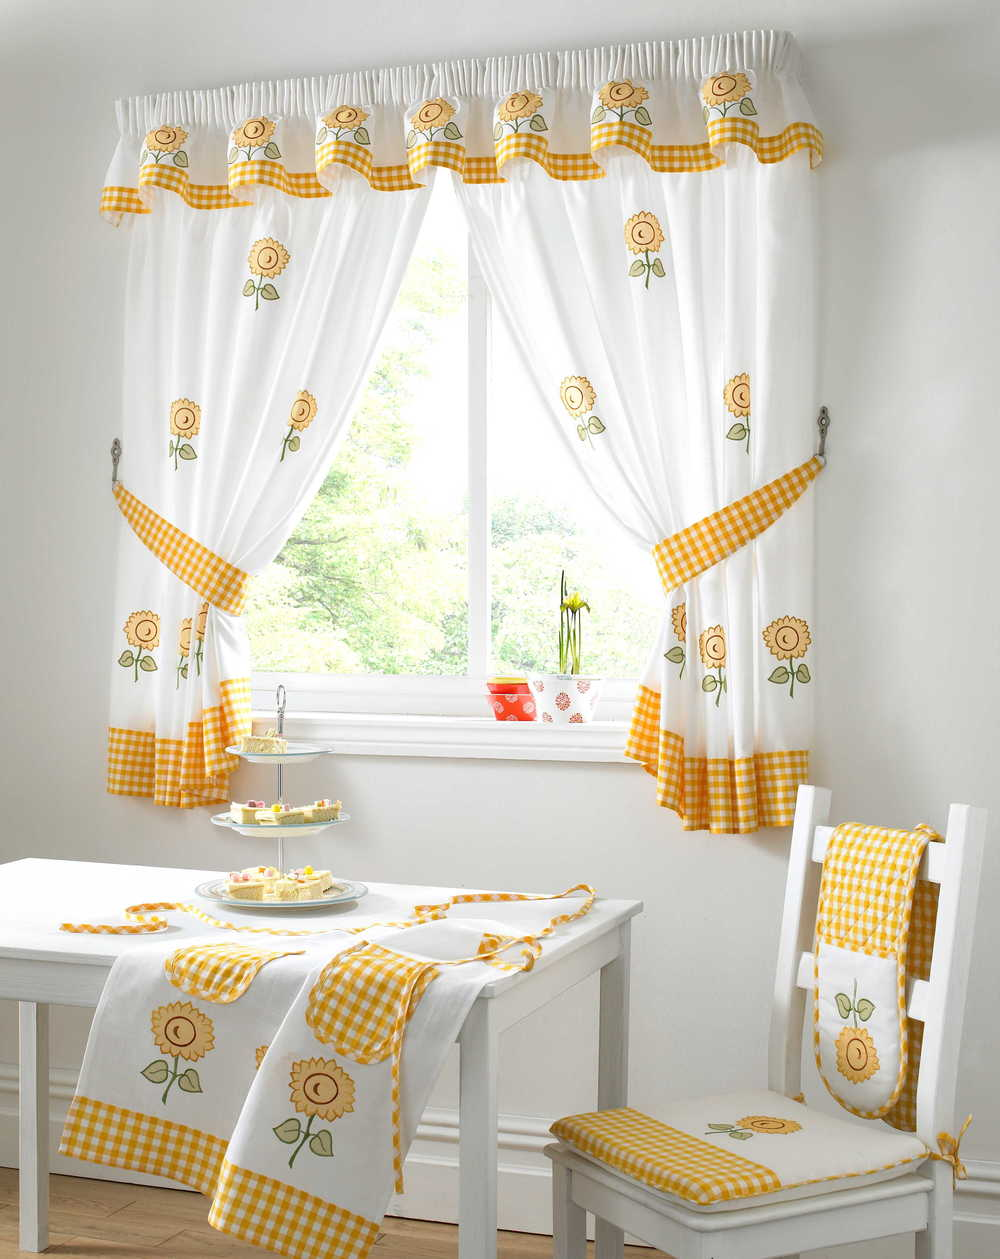 Sunflower Curtains.jpg